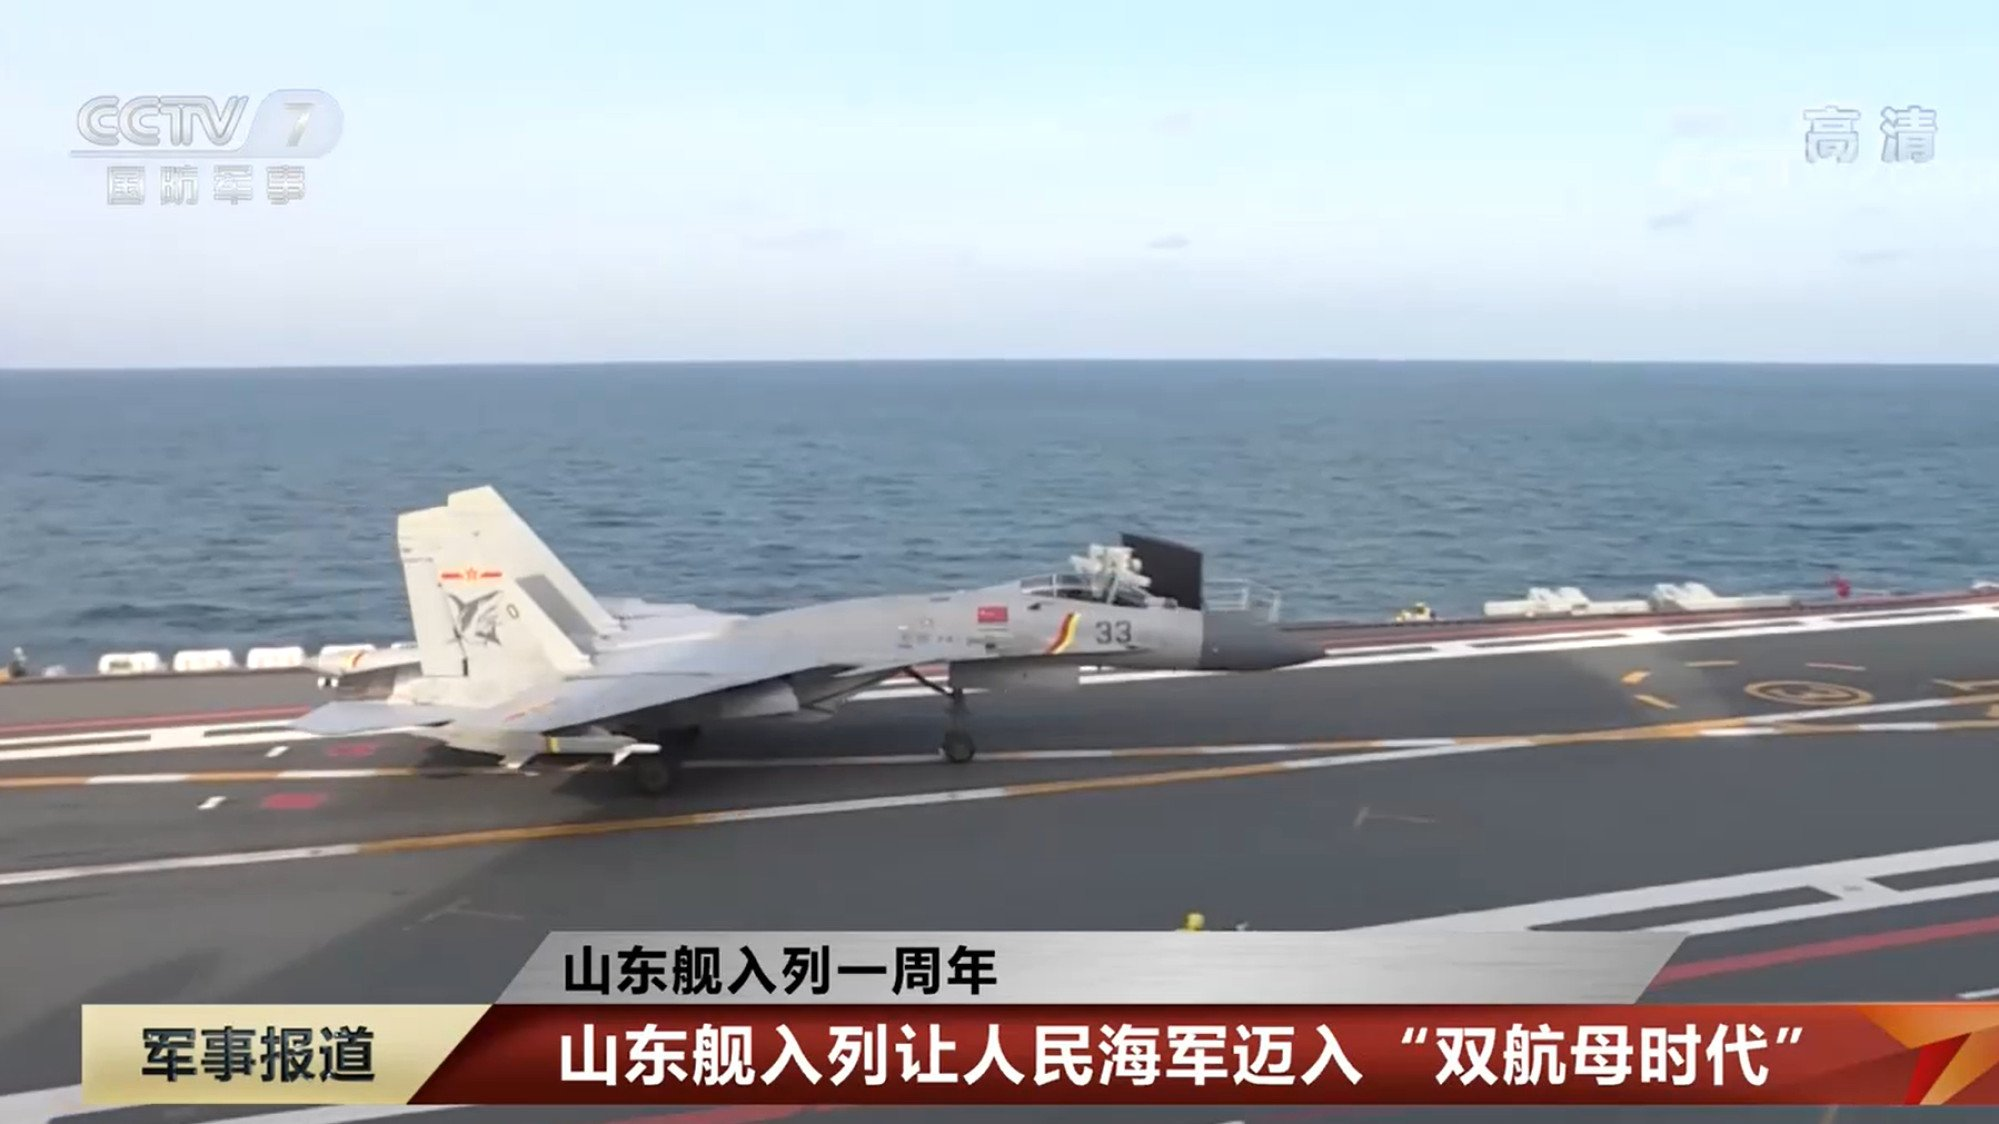 A J-15 fighter is seen on the flight deck of the Shandong in the CCTV video. Photo: CCTV